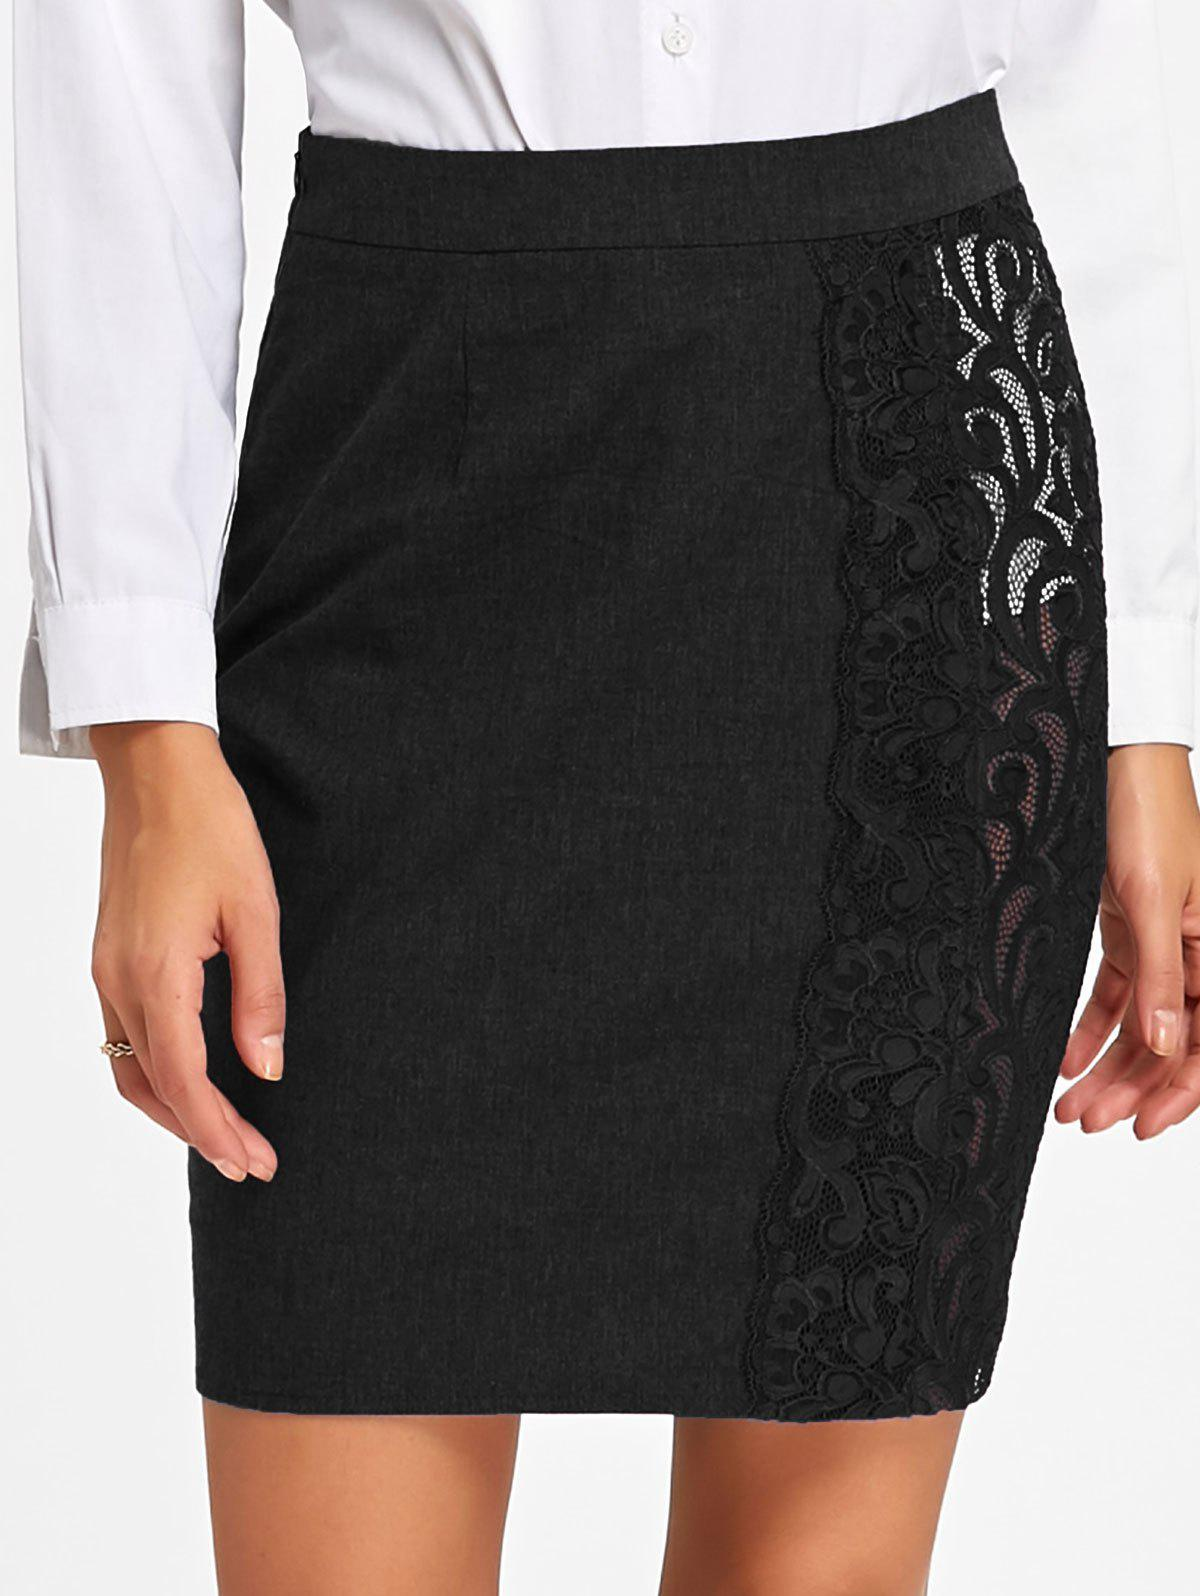 Store High Waist Slim Fit Lace Trim Skirt